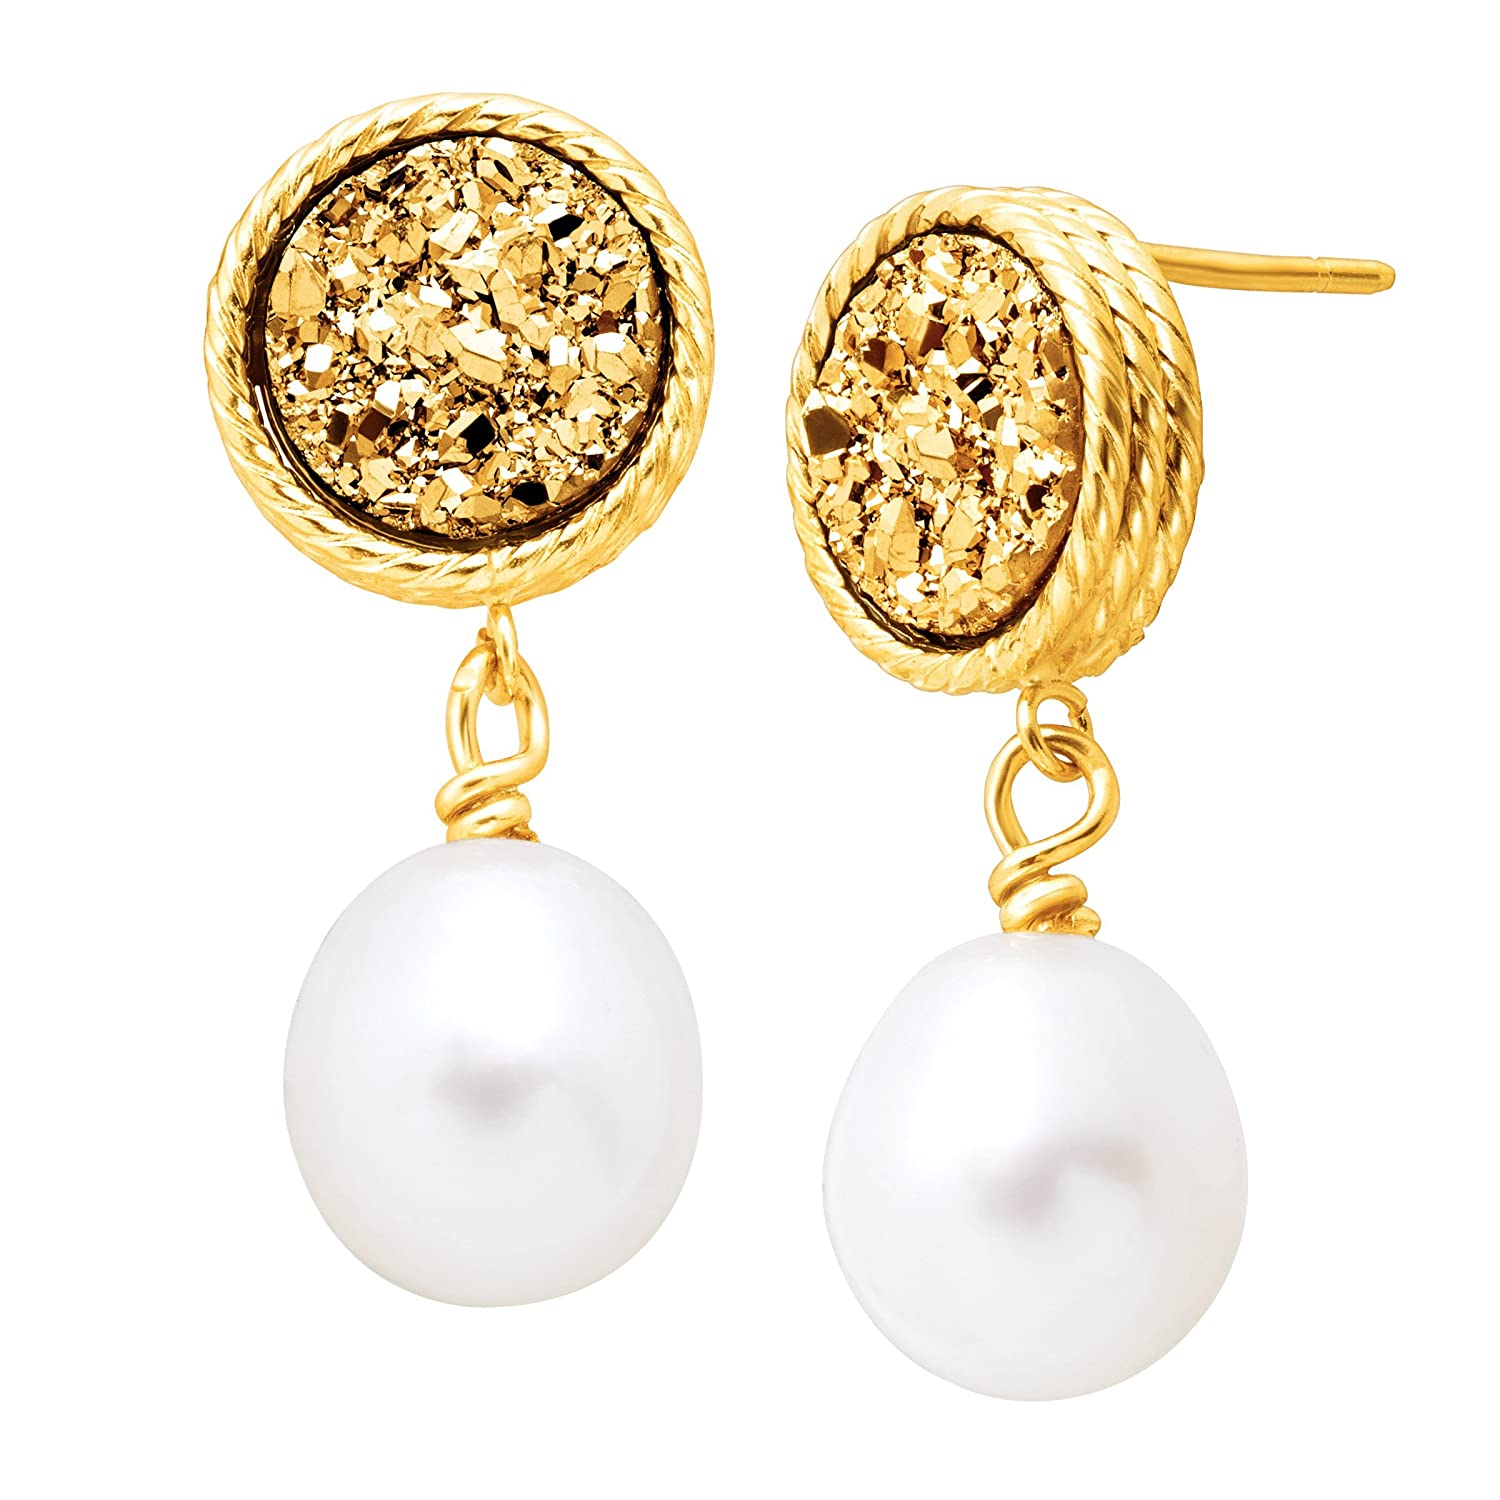 Honora Freshwater Oval Cultured Pearl & Golden Druzy Drop Earrings in 10K Gold Richline Group HZE3287GLD